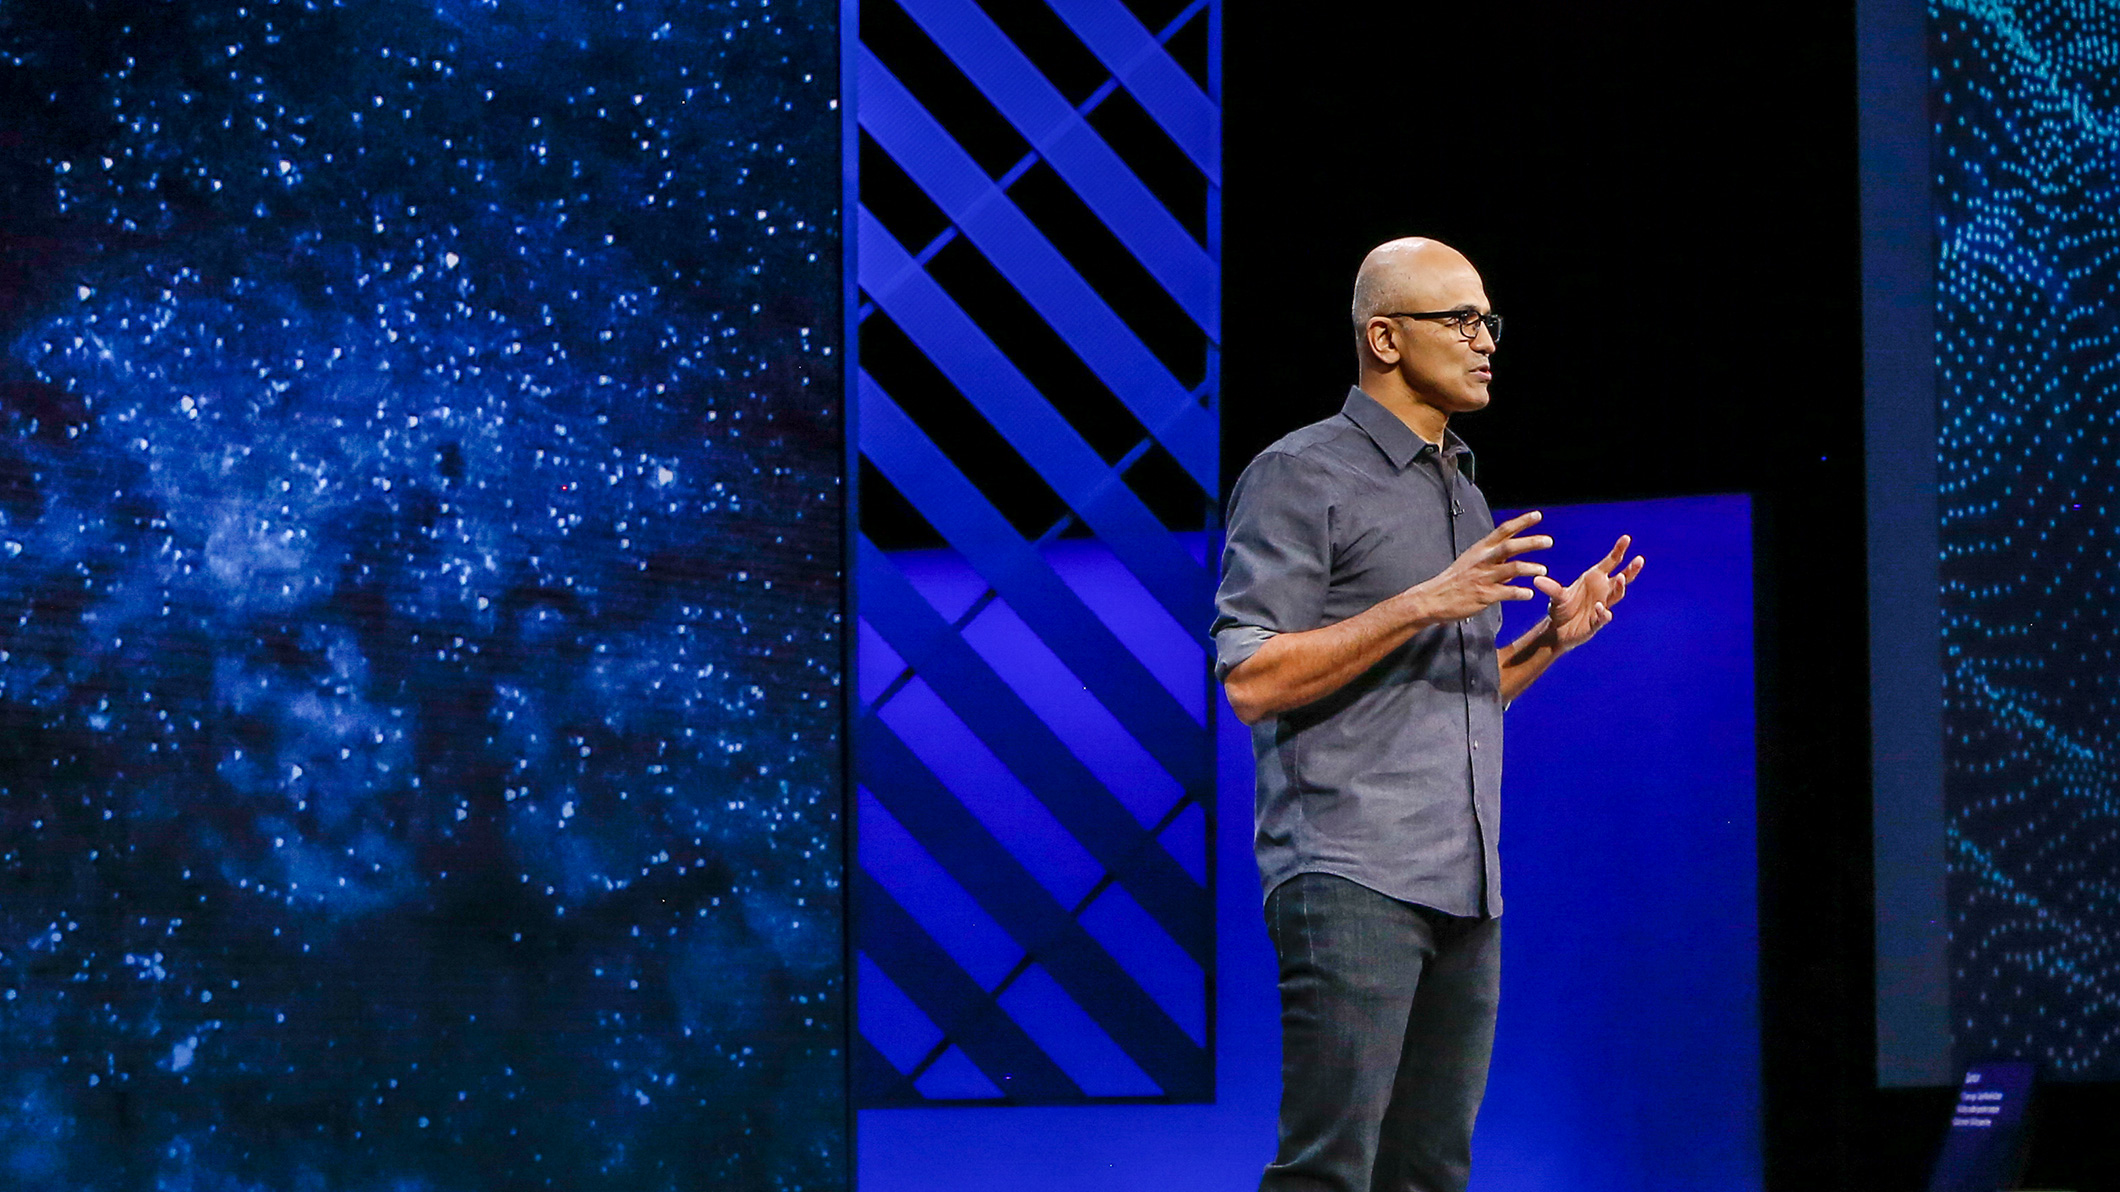 Satya Nadella giving a presentation